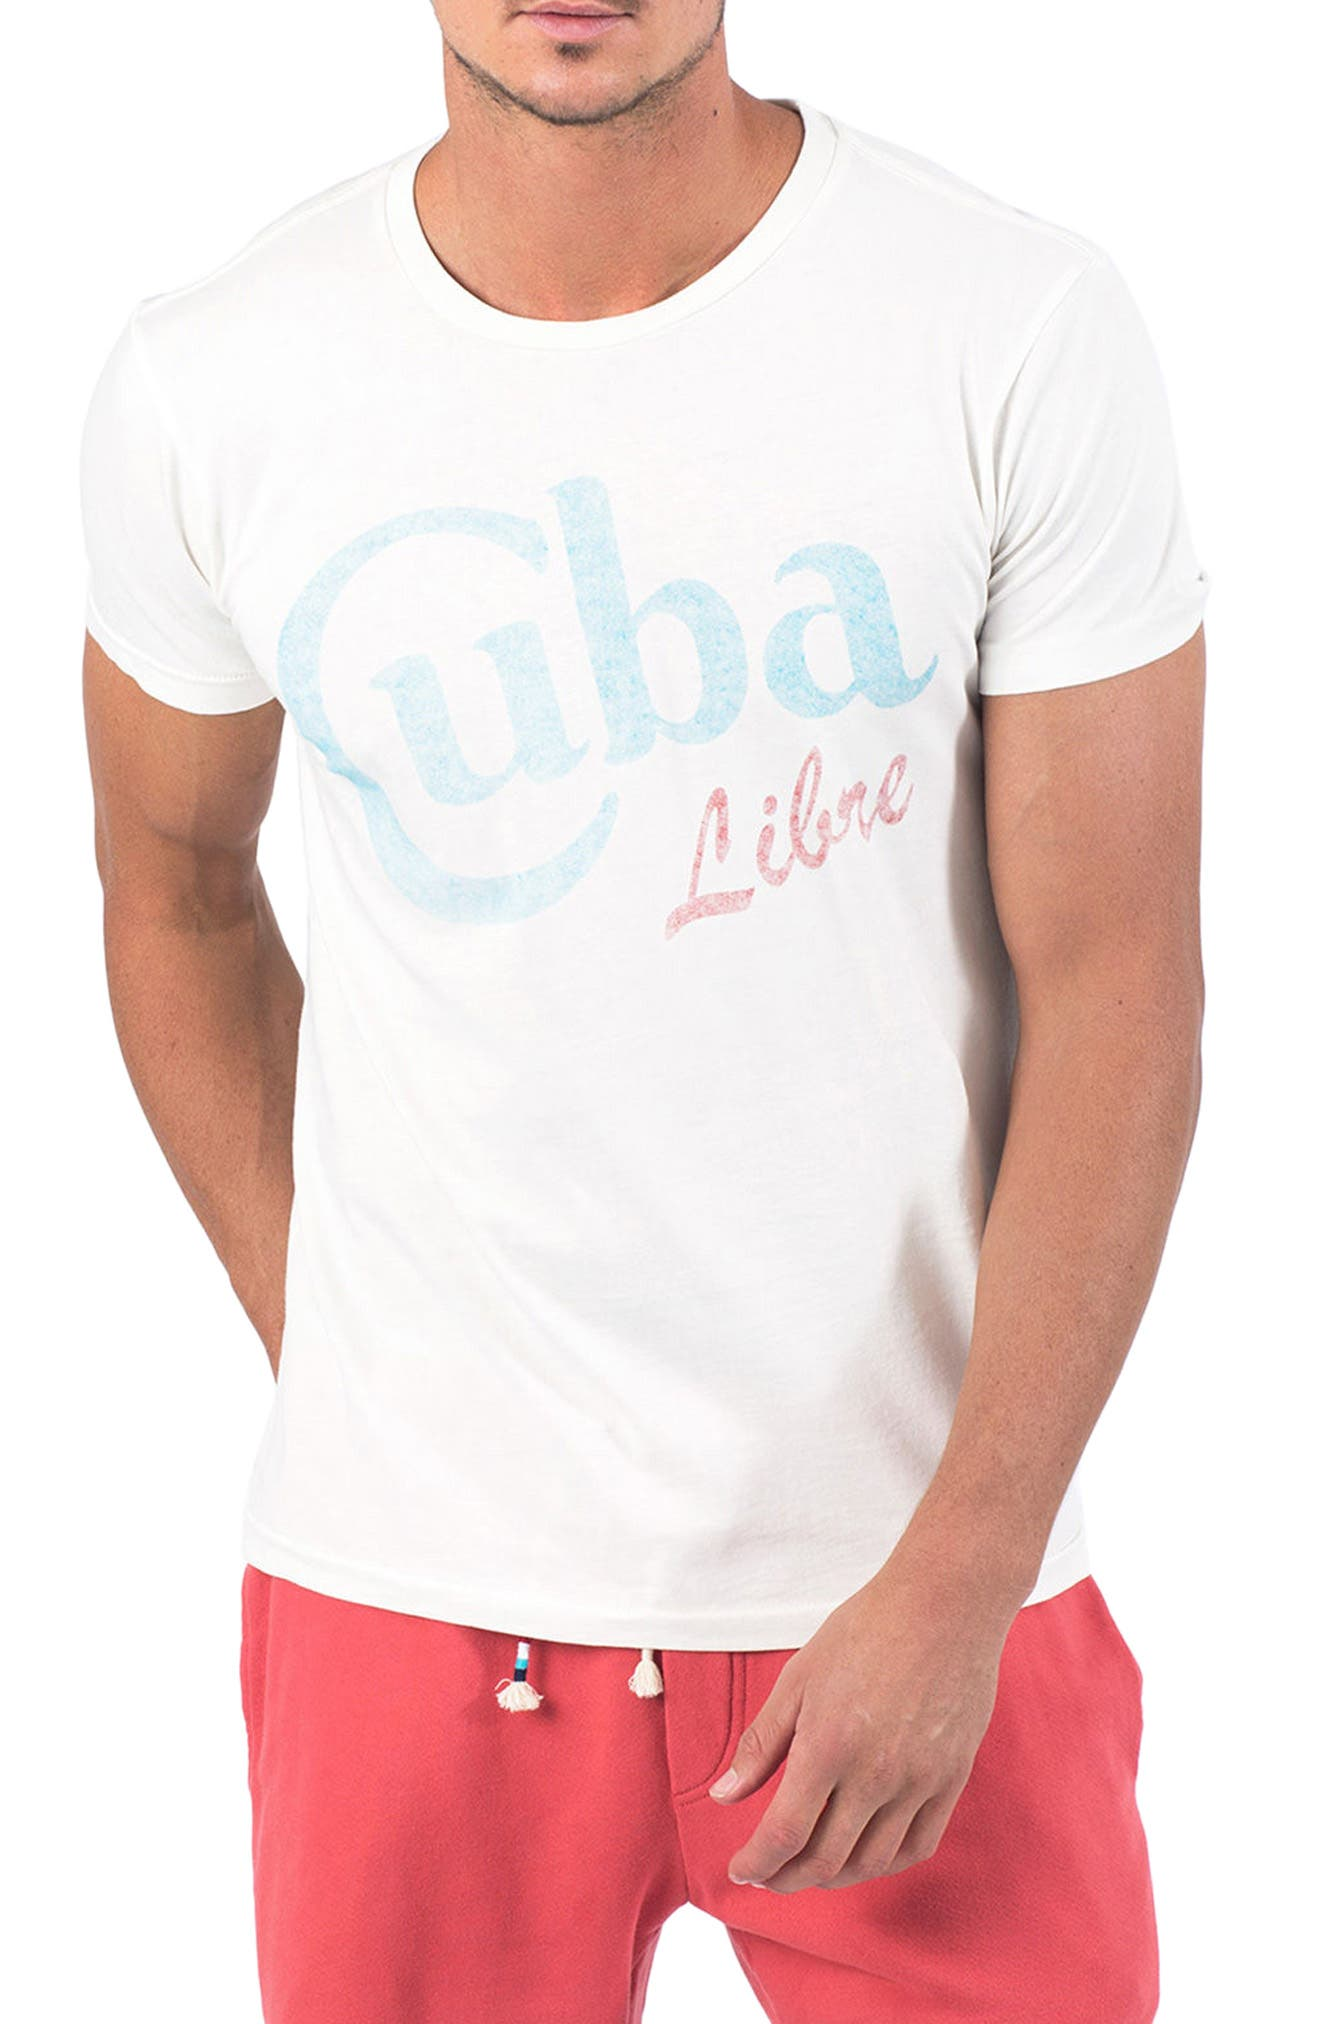 Cuba Libre T-Shirt,                         Main,                         color, 900